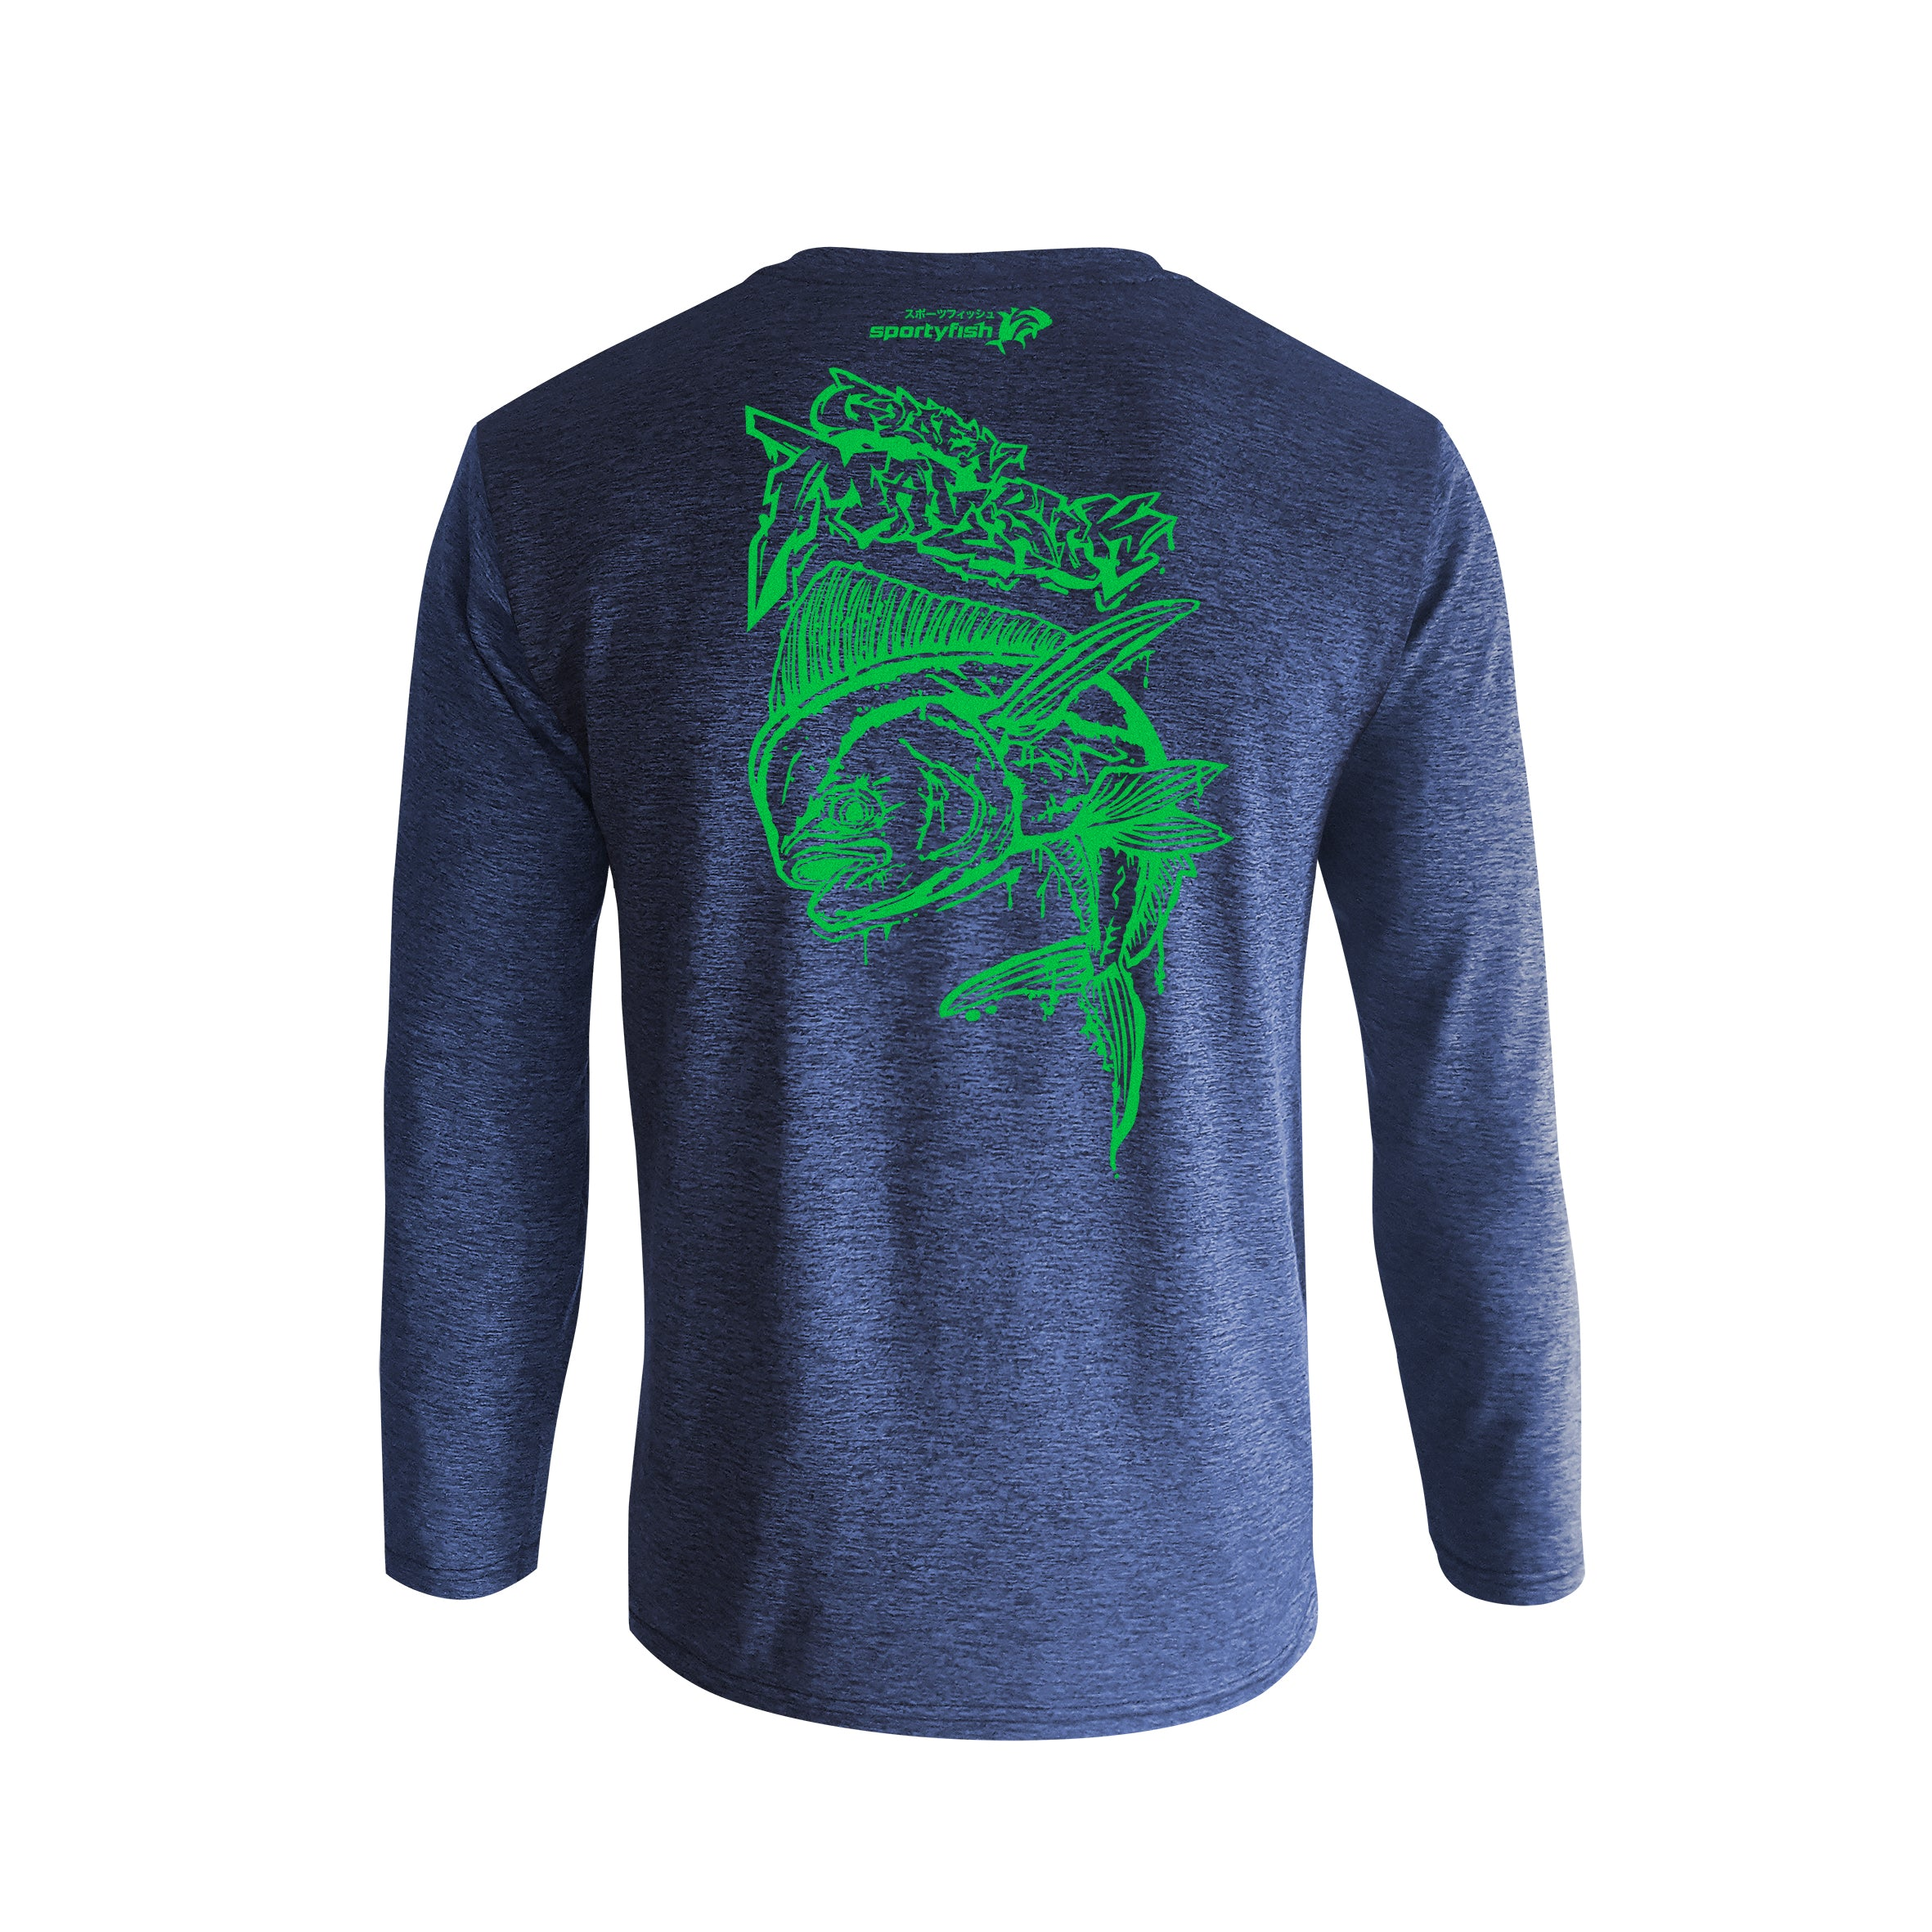 Wildstyle Graffiti Series Blue Long-sleeves T-shirt(back view)Electric Green: Mahi-mahi